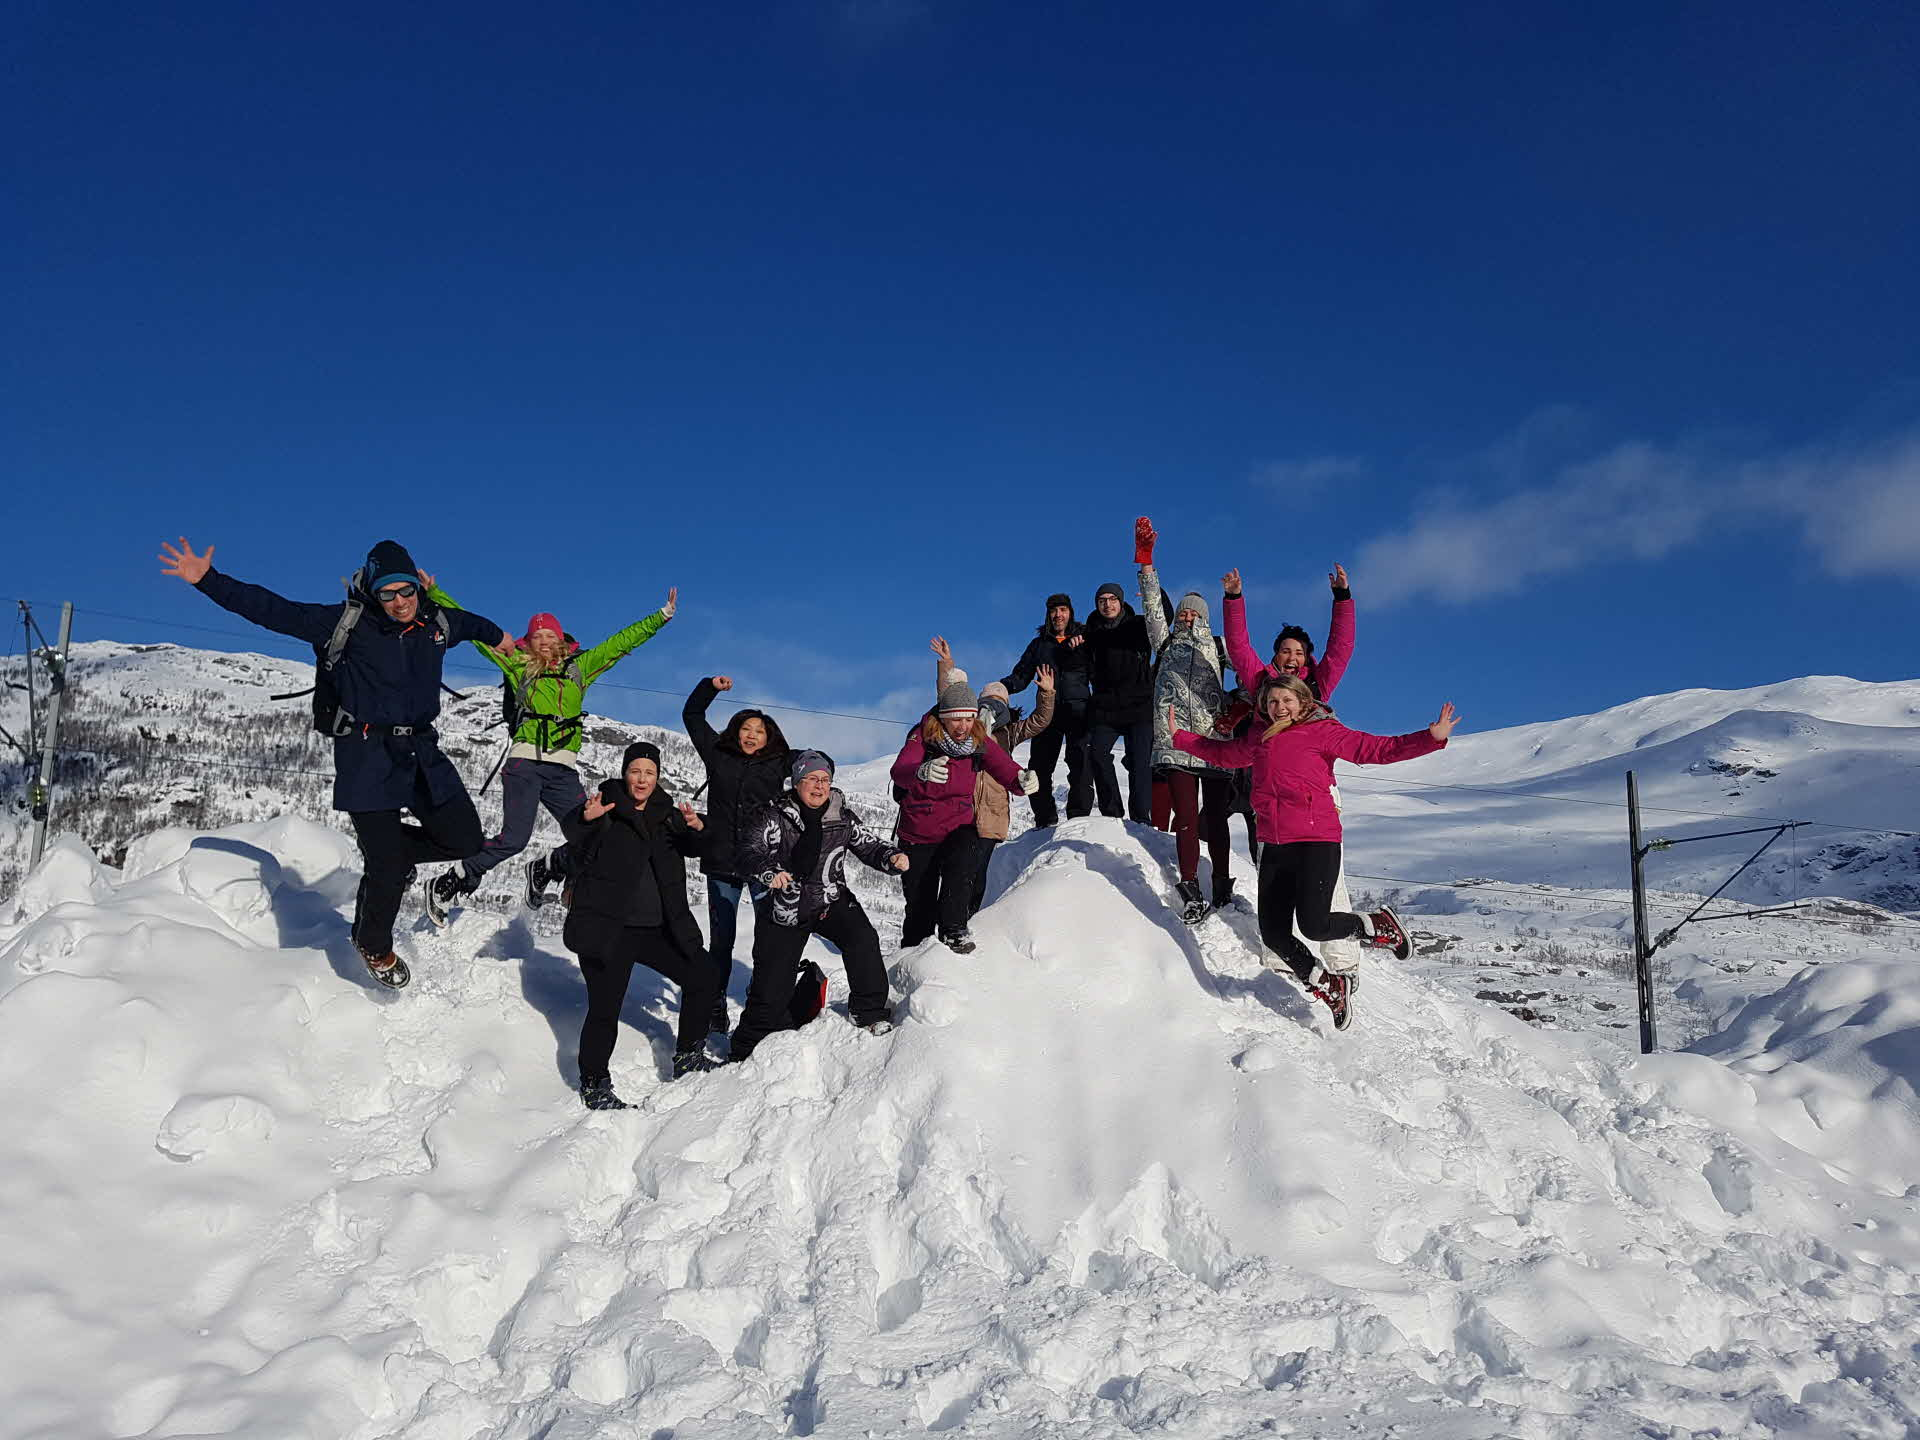 Group of people in winter clothing jumping up in the air and smiling on top snow hill in sunshine, blue skies.